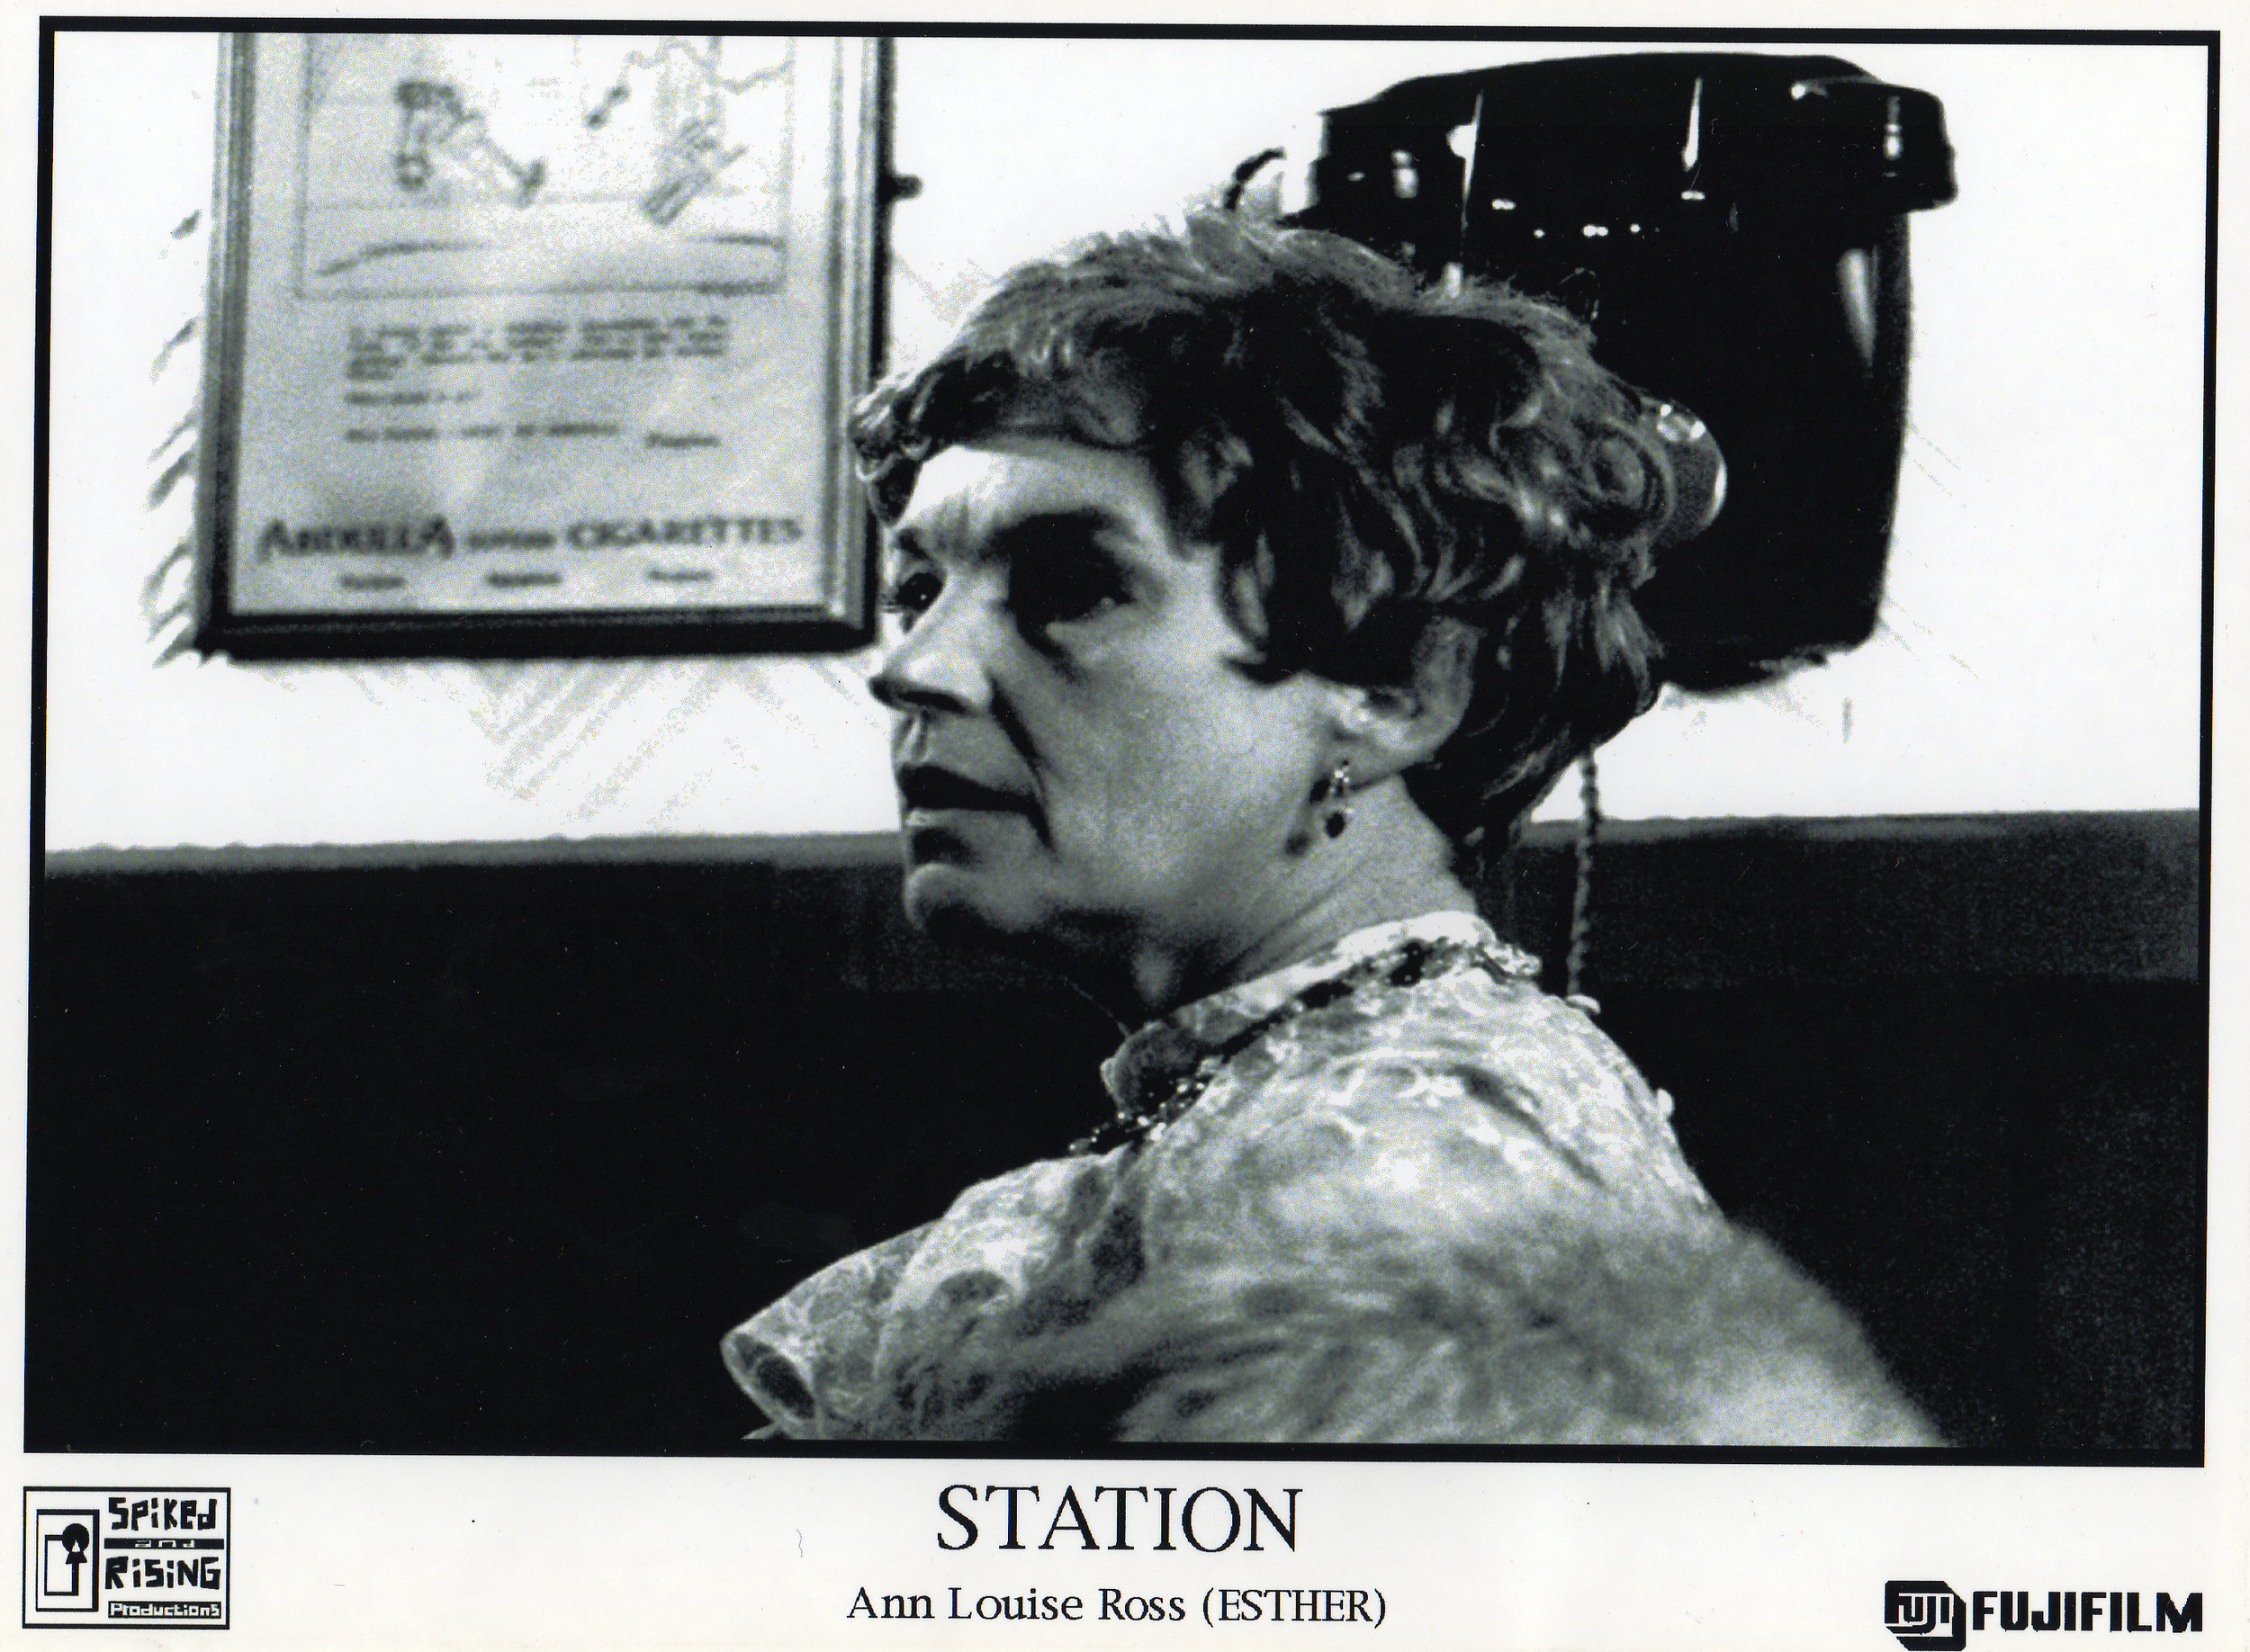 Station - screen photo - Esther - Ann Louise Ross.jpg